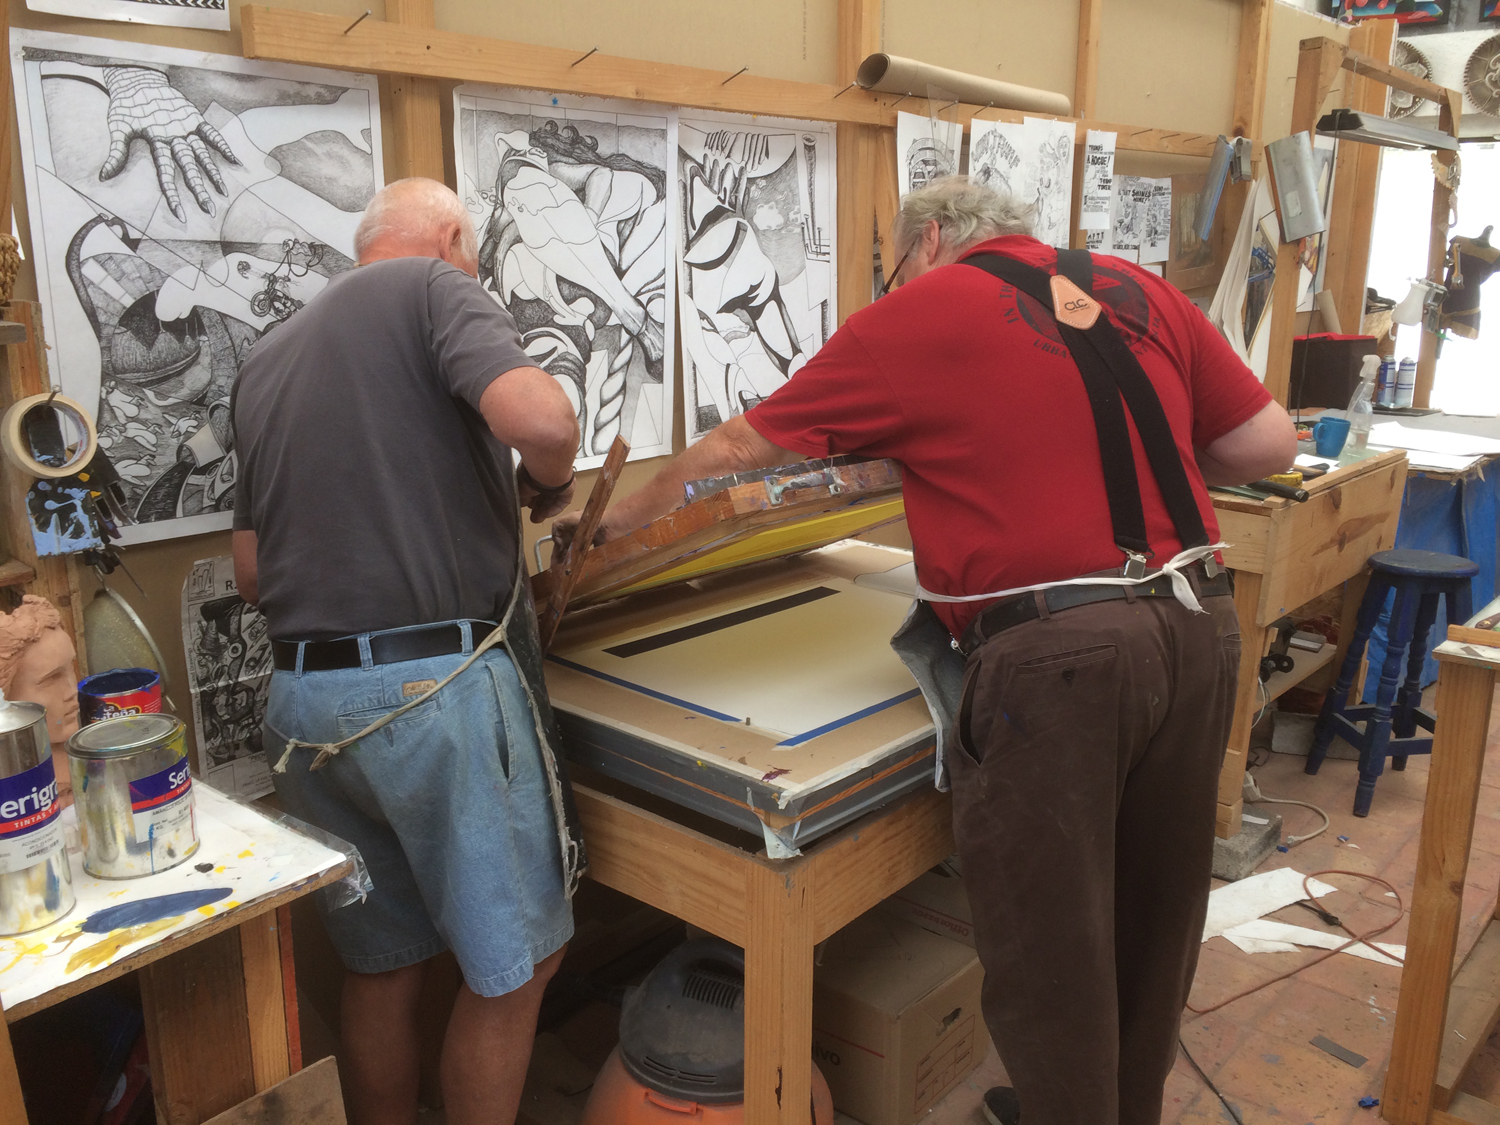 Bob, left, works with Richard Webb of the Black Cat Printmaking Studio, San Miguel de Allende. Richard has a gorgeous screen printing studio. as well as a small performance stage for impromtu performances when his blues band buddies come by.